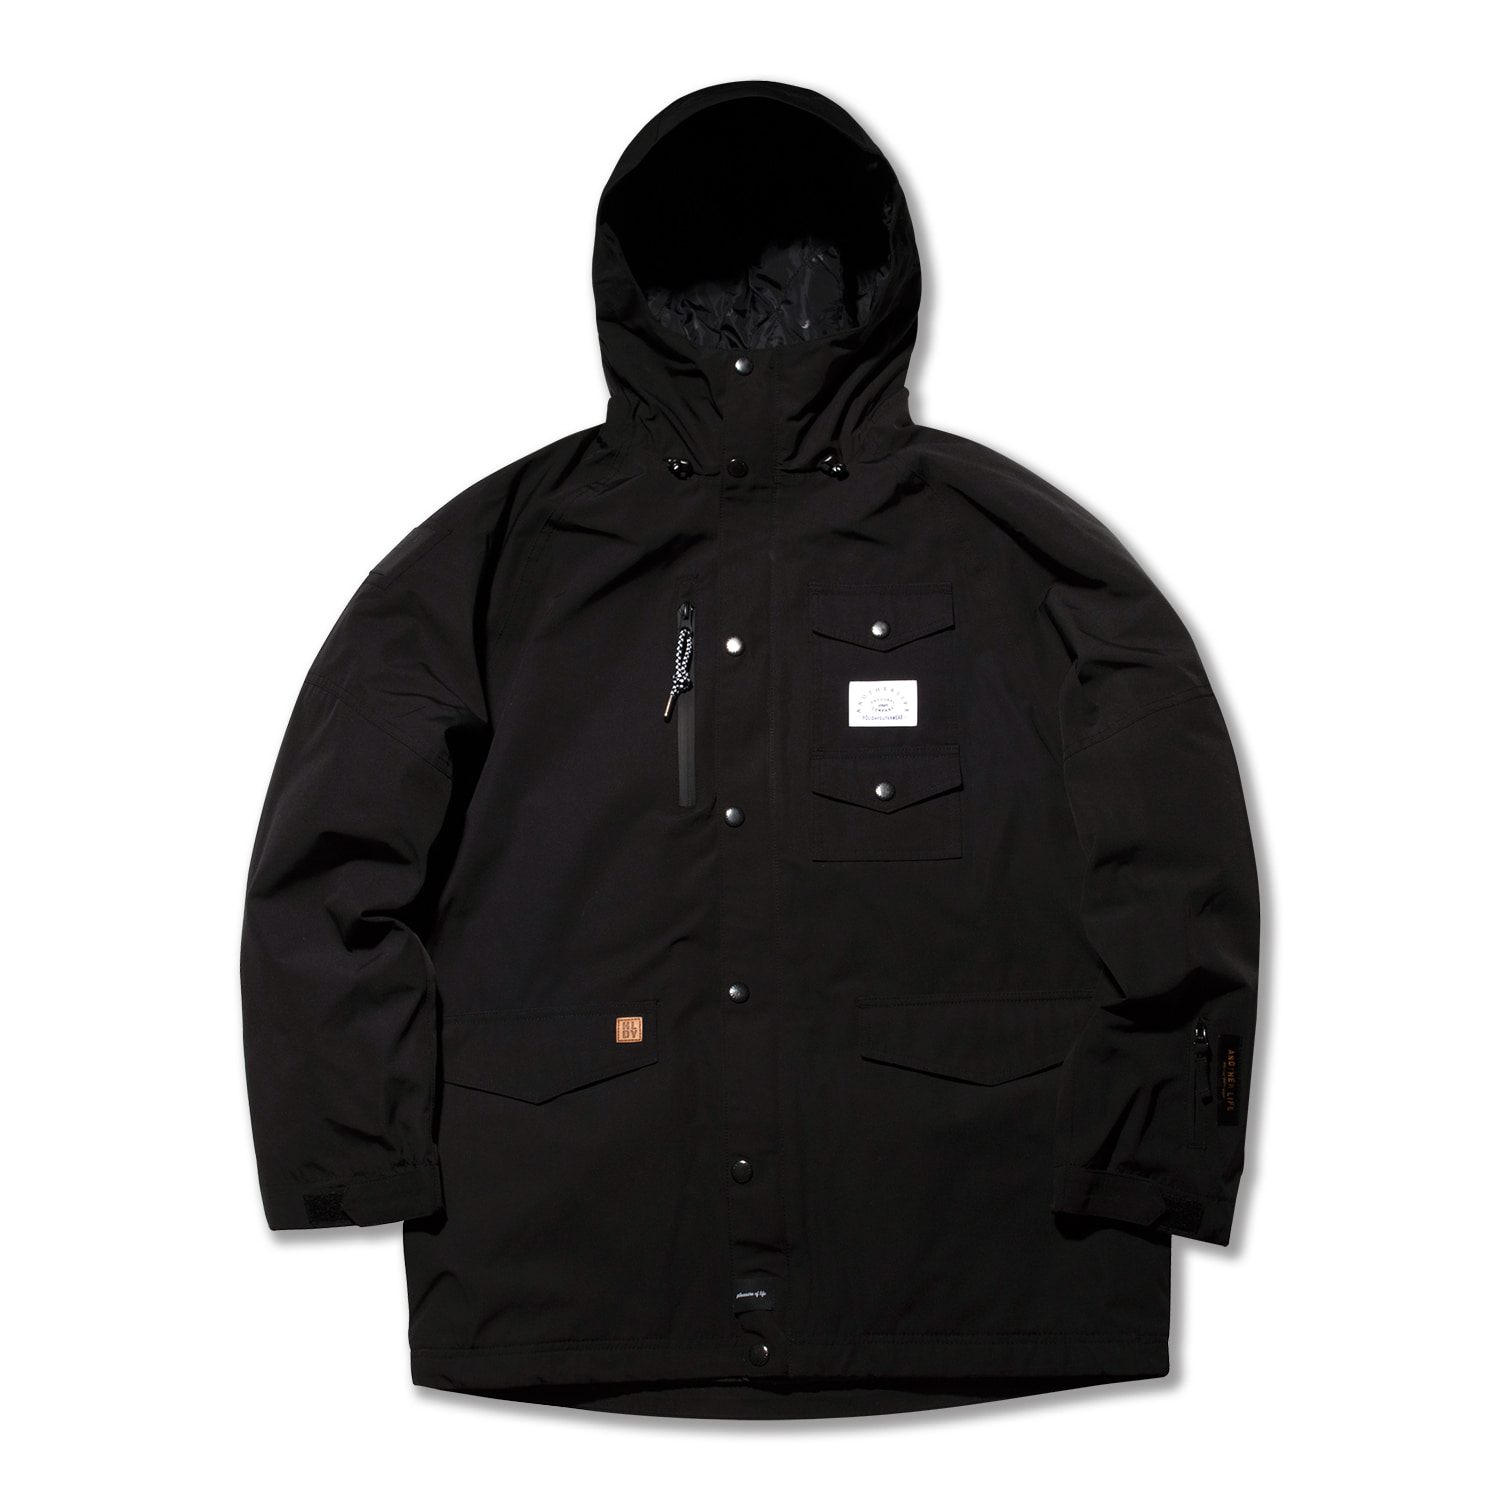 TROOPER jacket - blackHOLIDAY OUTERWEAR